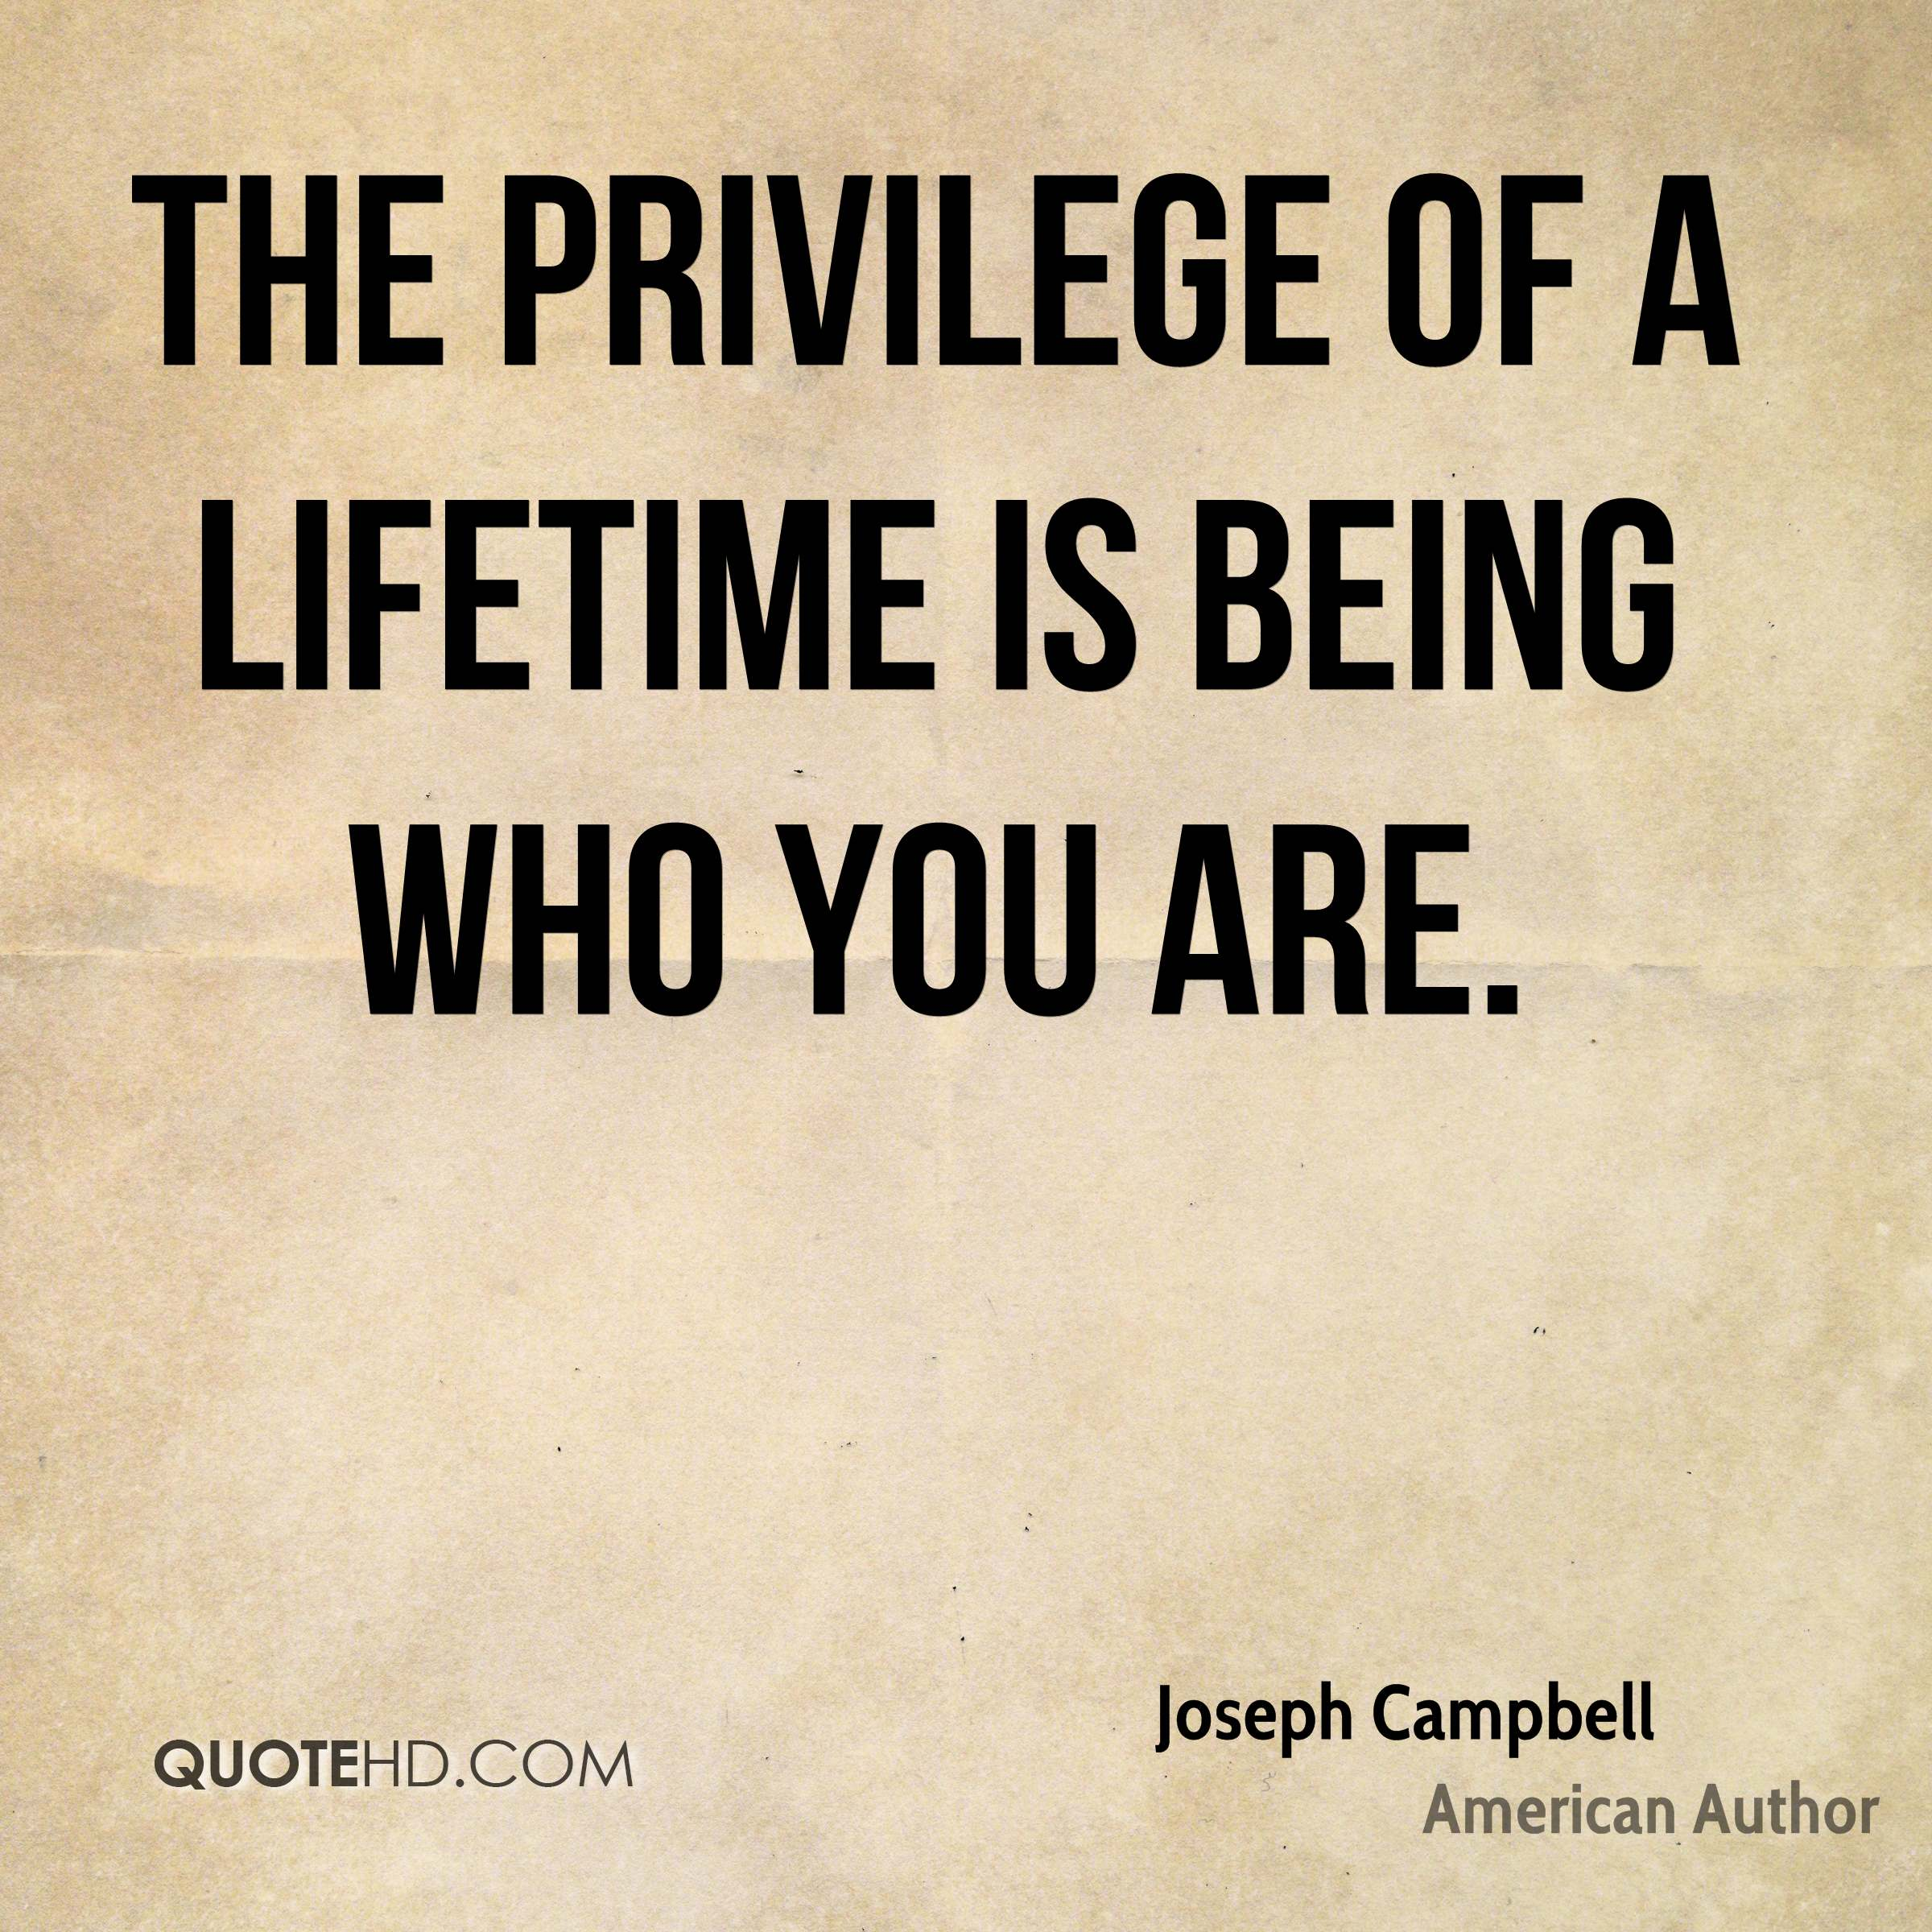 Joseph Campbell Quotes On Love: Joseph Campbell Life Quotes